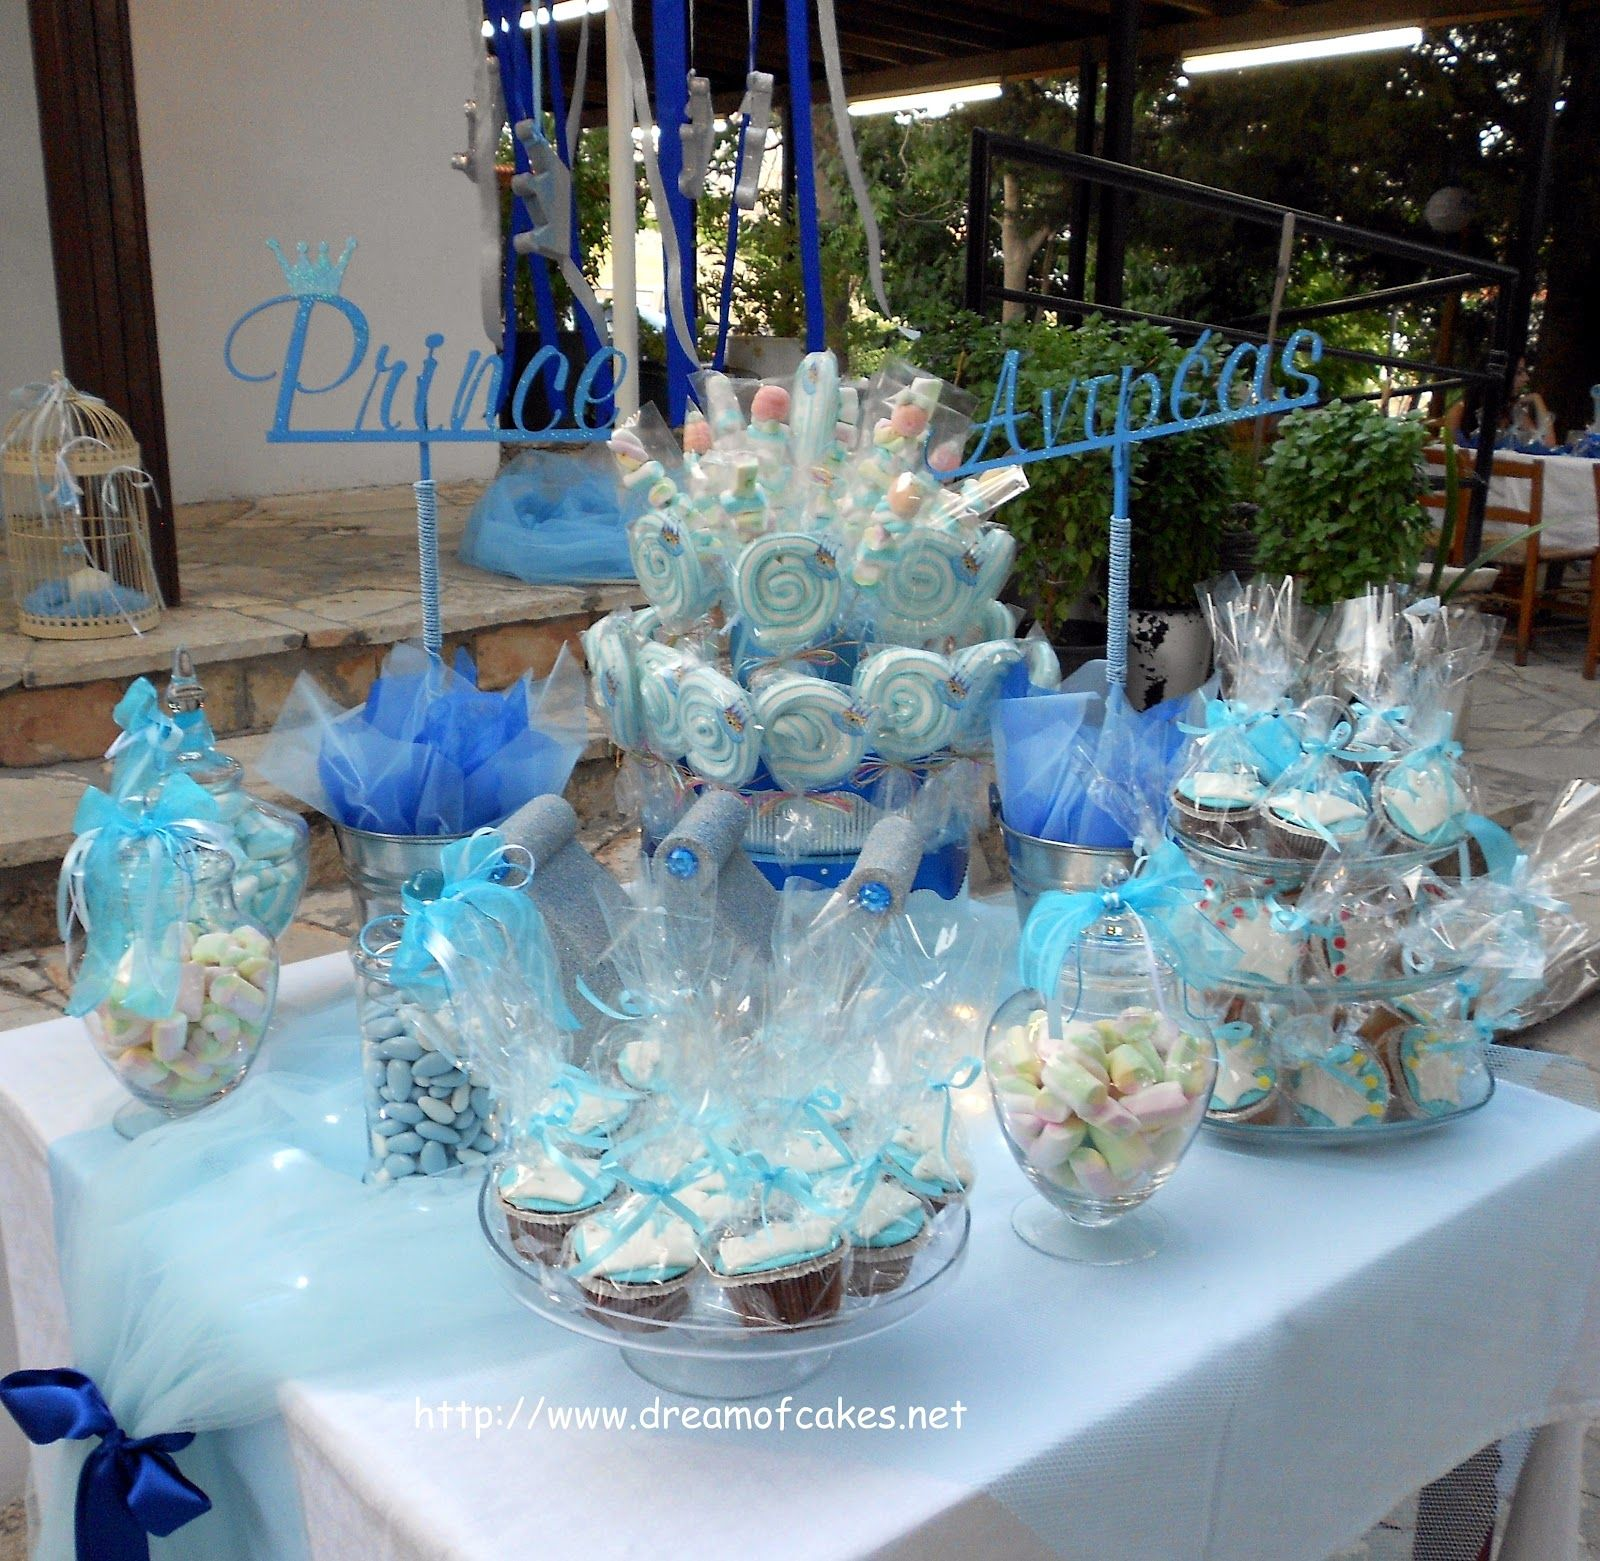 Christening decorations ideas for boys displaying 17 images for boy baptism party - Decorations for a baptism ...